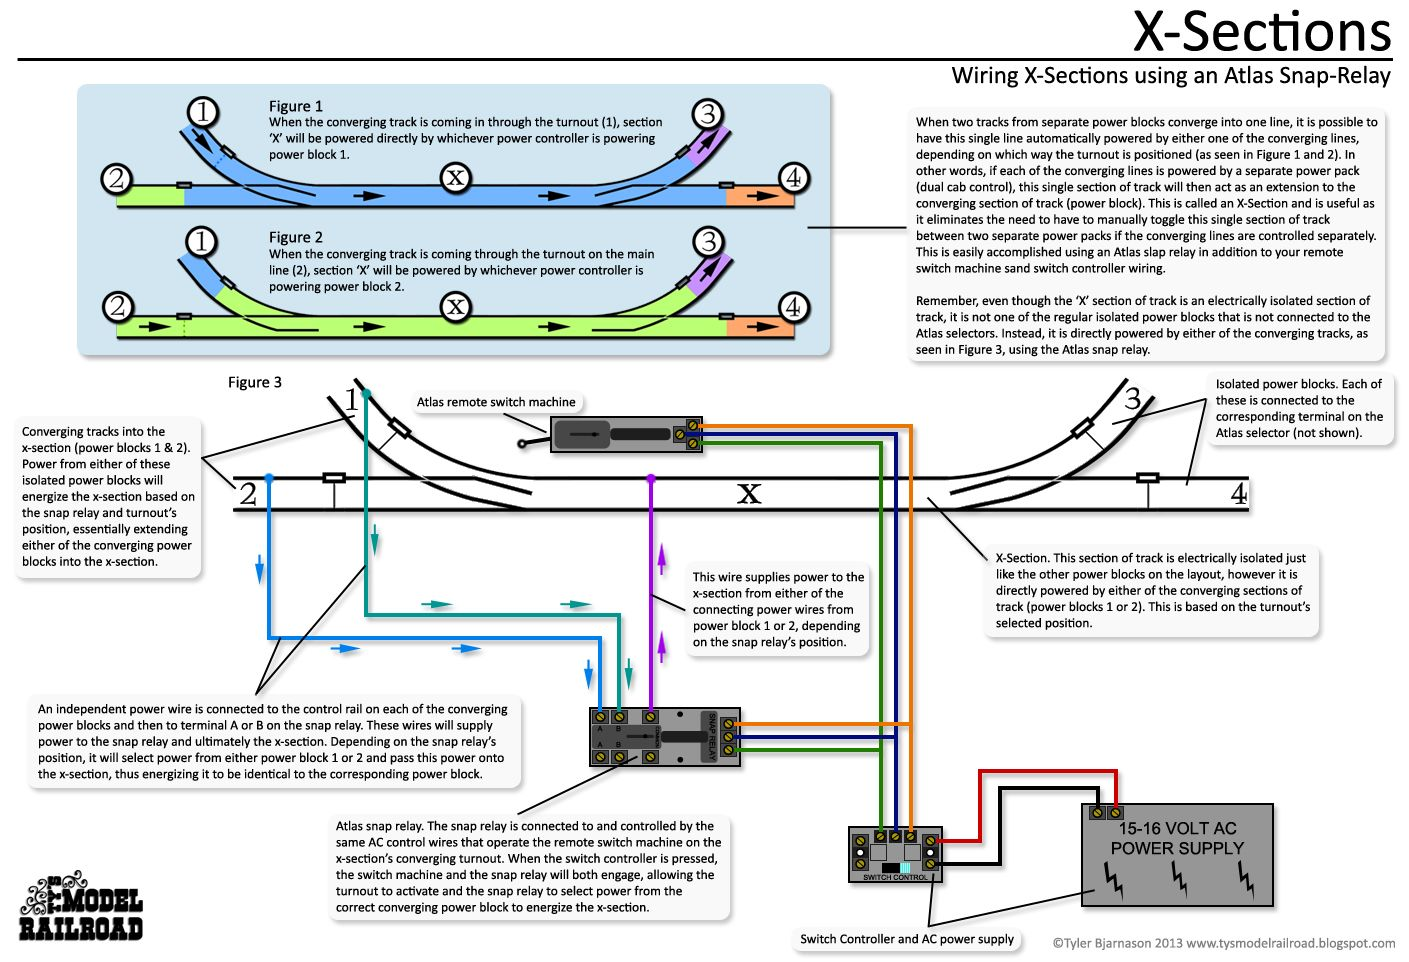 medium resolution of how to wire an x section using an atlas snap relay and existing remote switch machine wiring